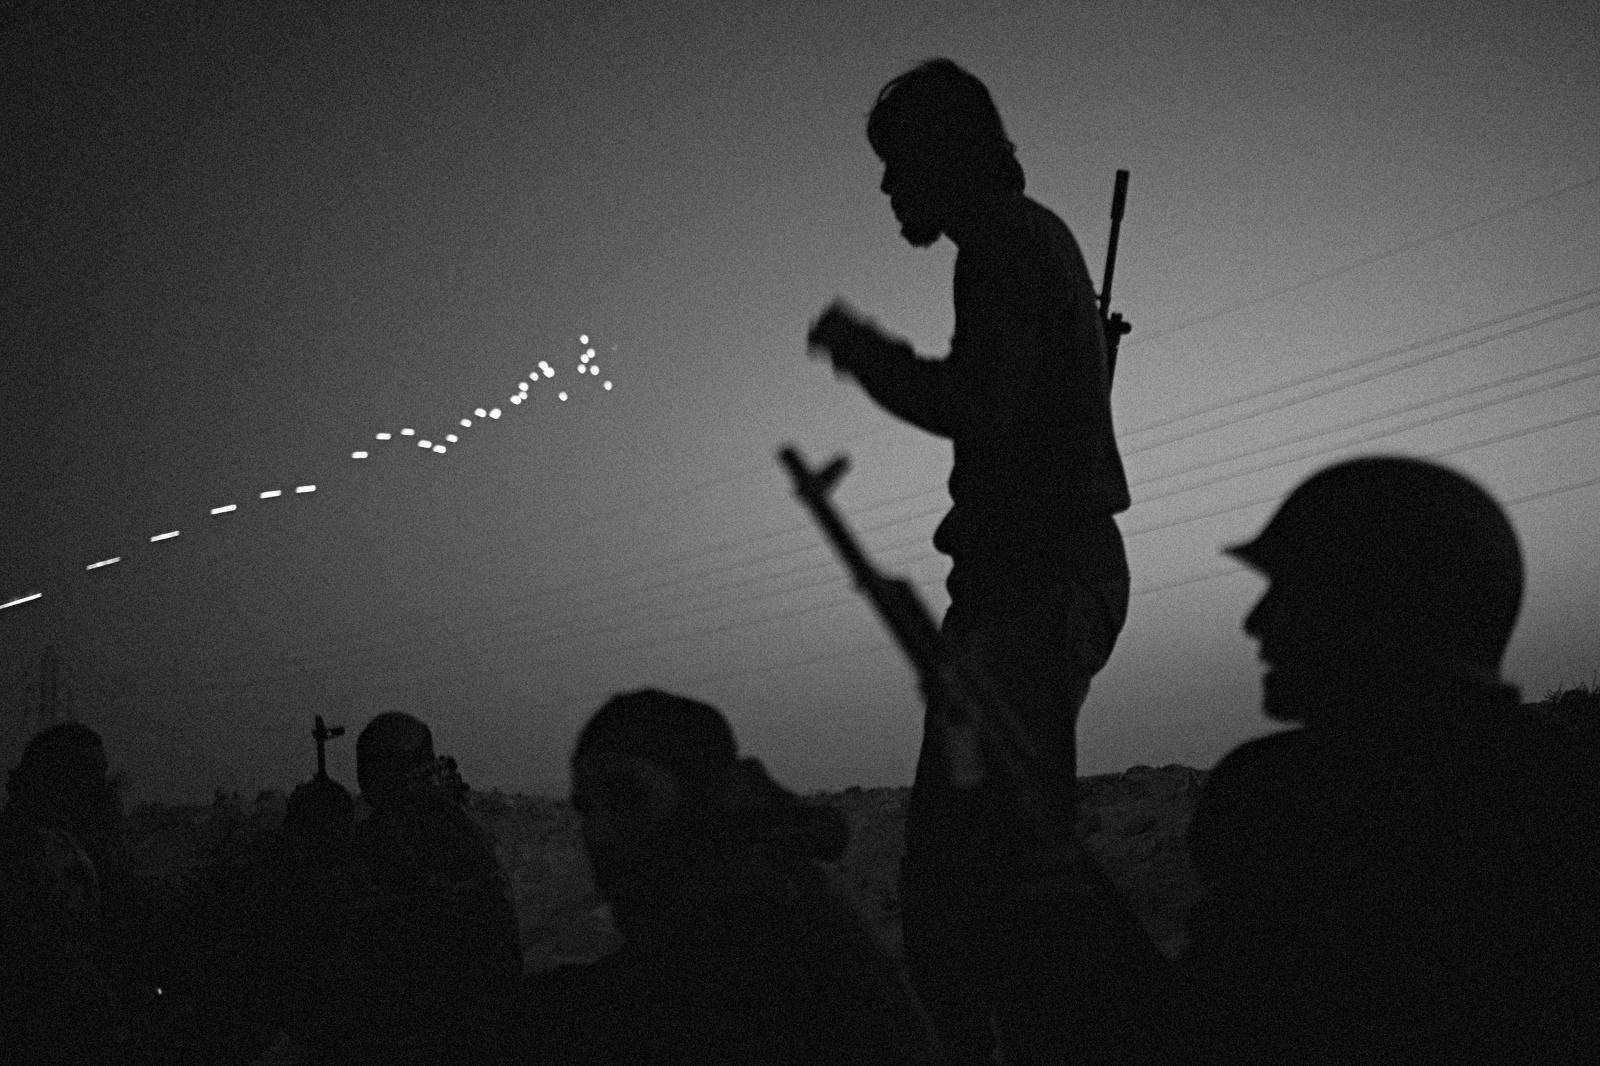 Rebel fighters at sunset on the outskirts of Ajdabiya watch tracer bullets light up the sky on March 25, 2011.